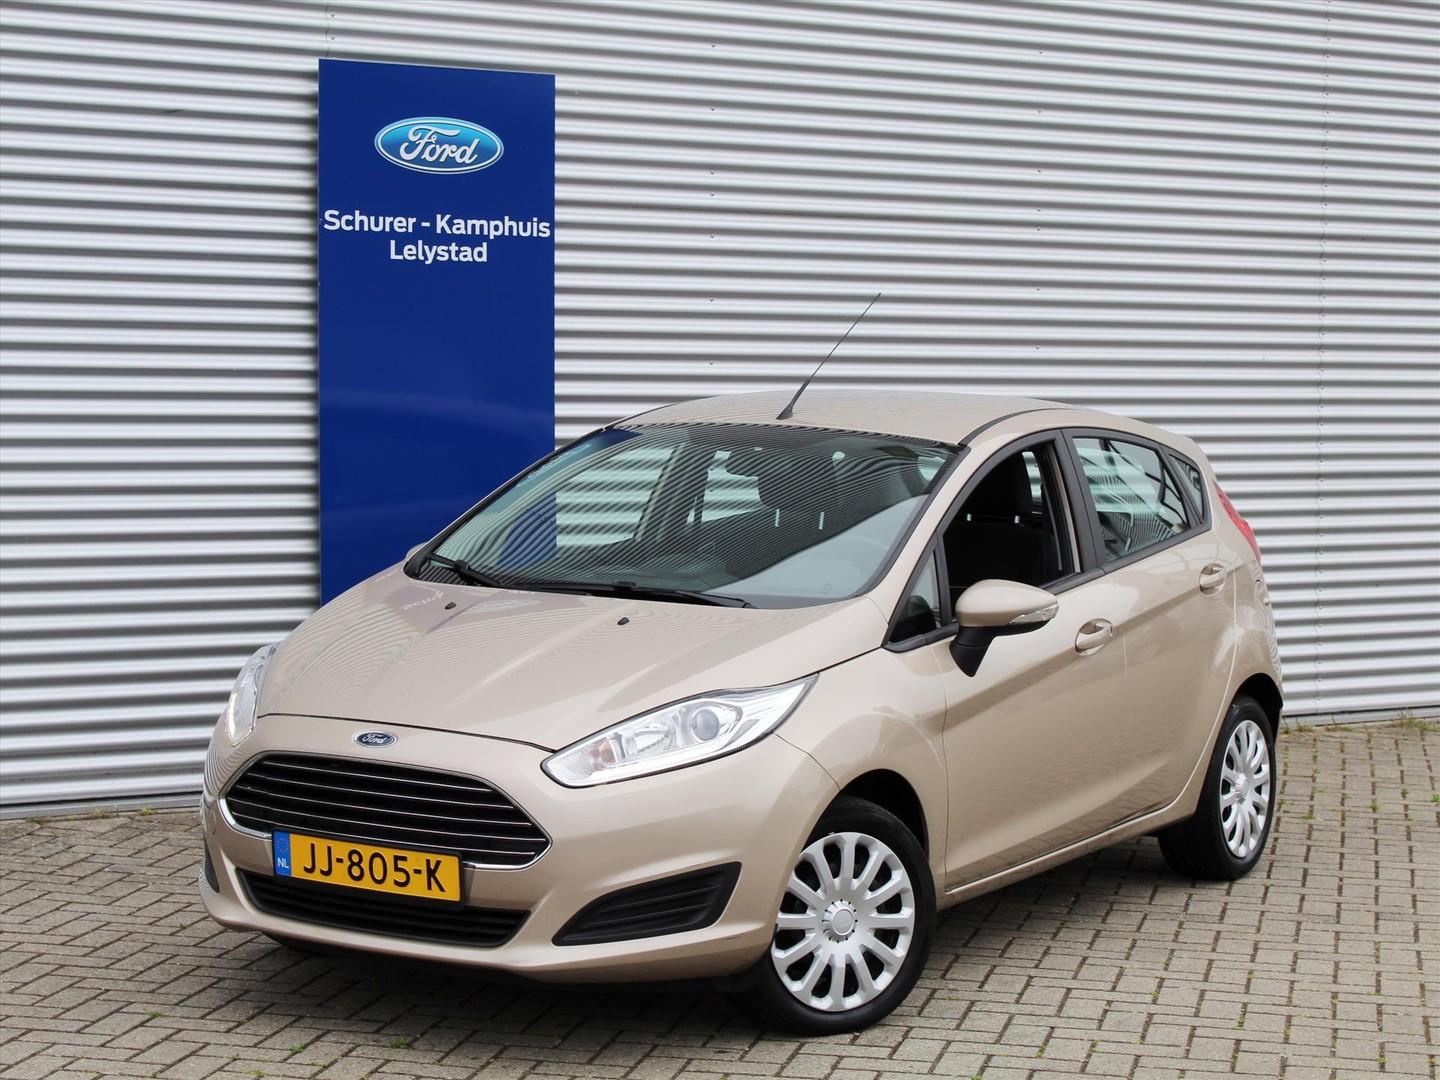 Ford Fiesta 1.0 5-drs style navigator